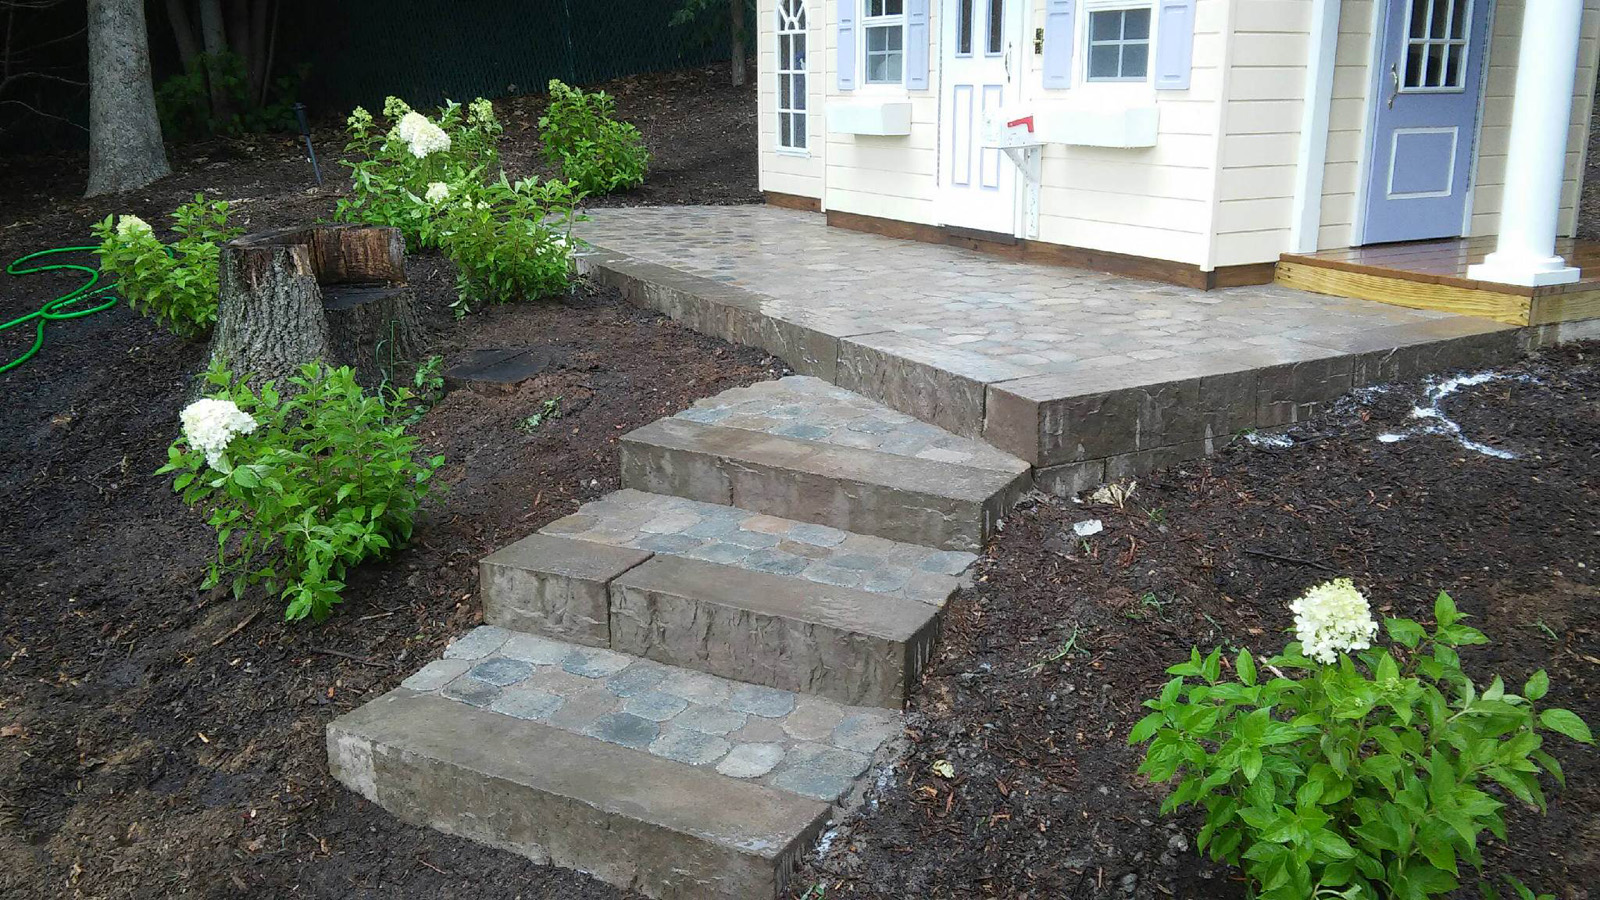 Top hardscape paver landscape design company in Long Island, NY